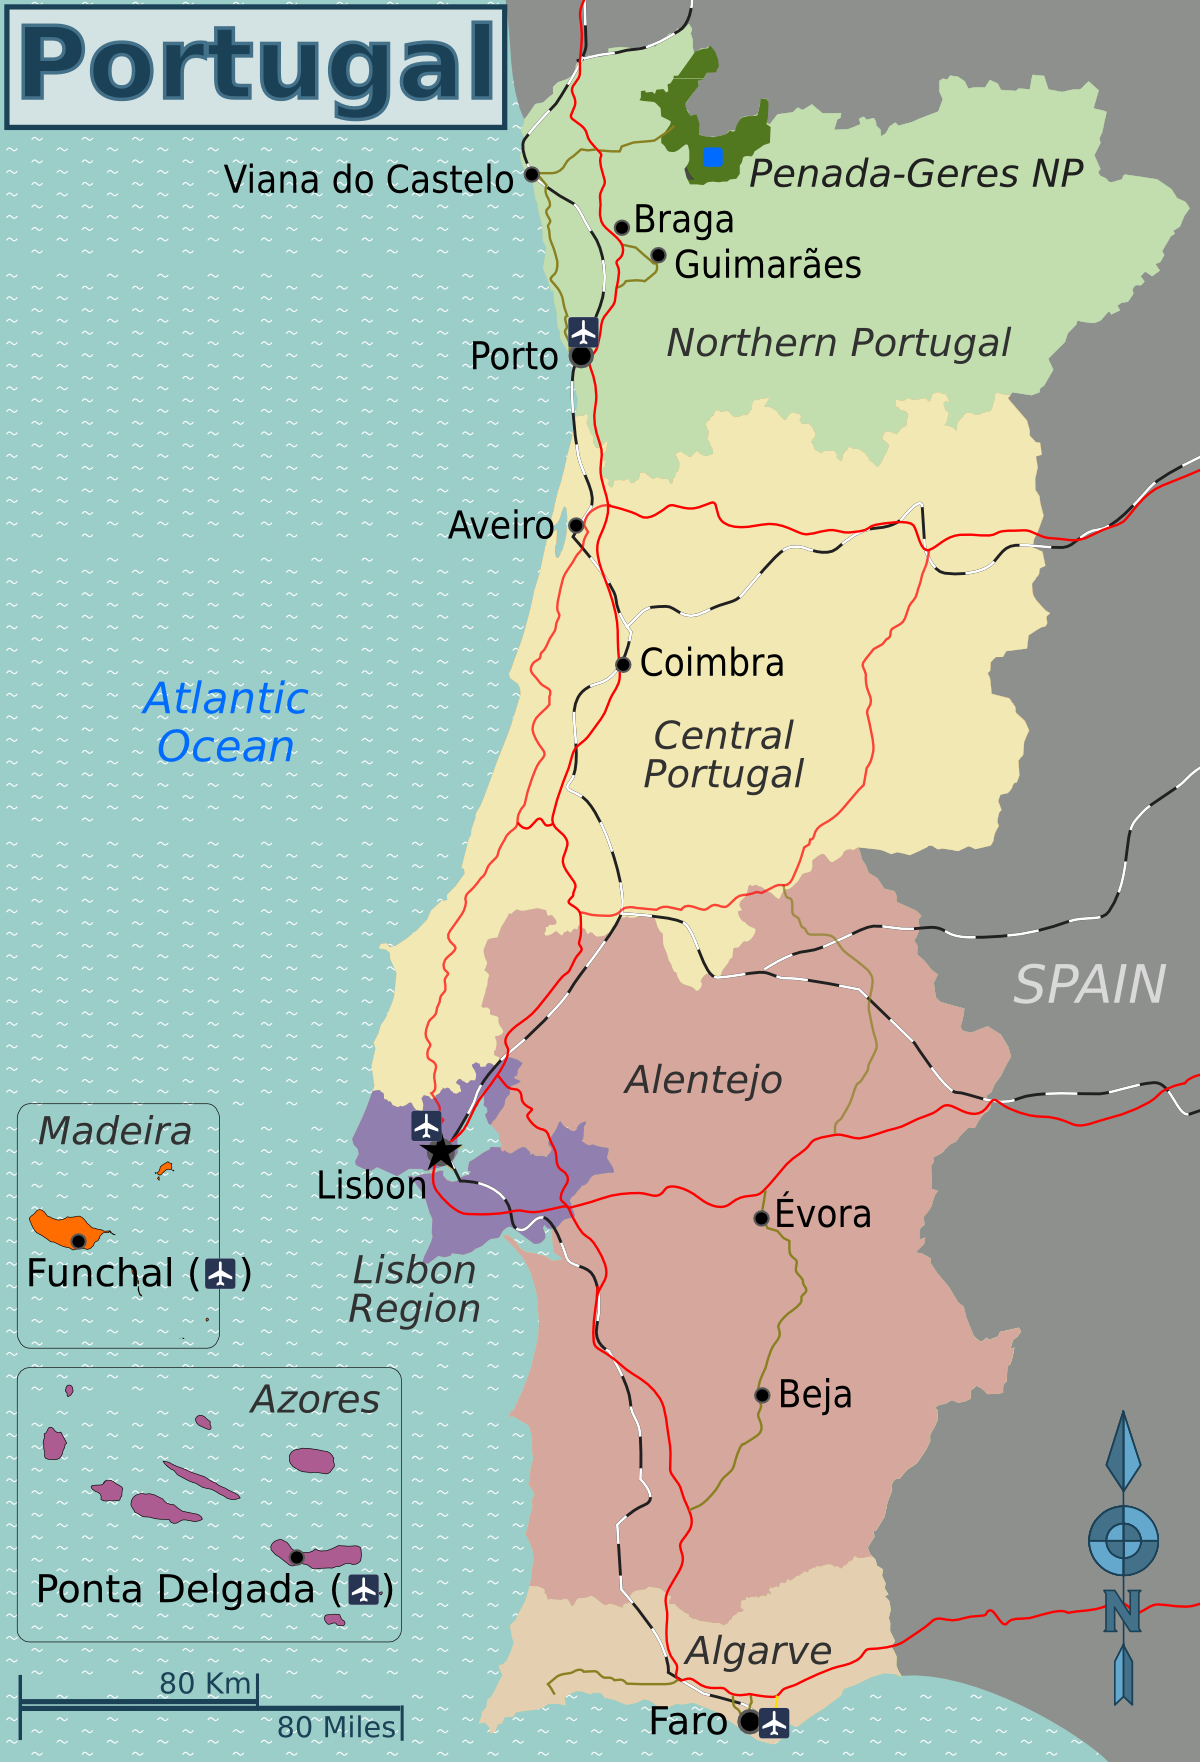 FilePortugal Regions Travel Map ENpng Wikimedia Commons - Portugal map wikipedia